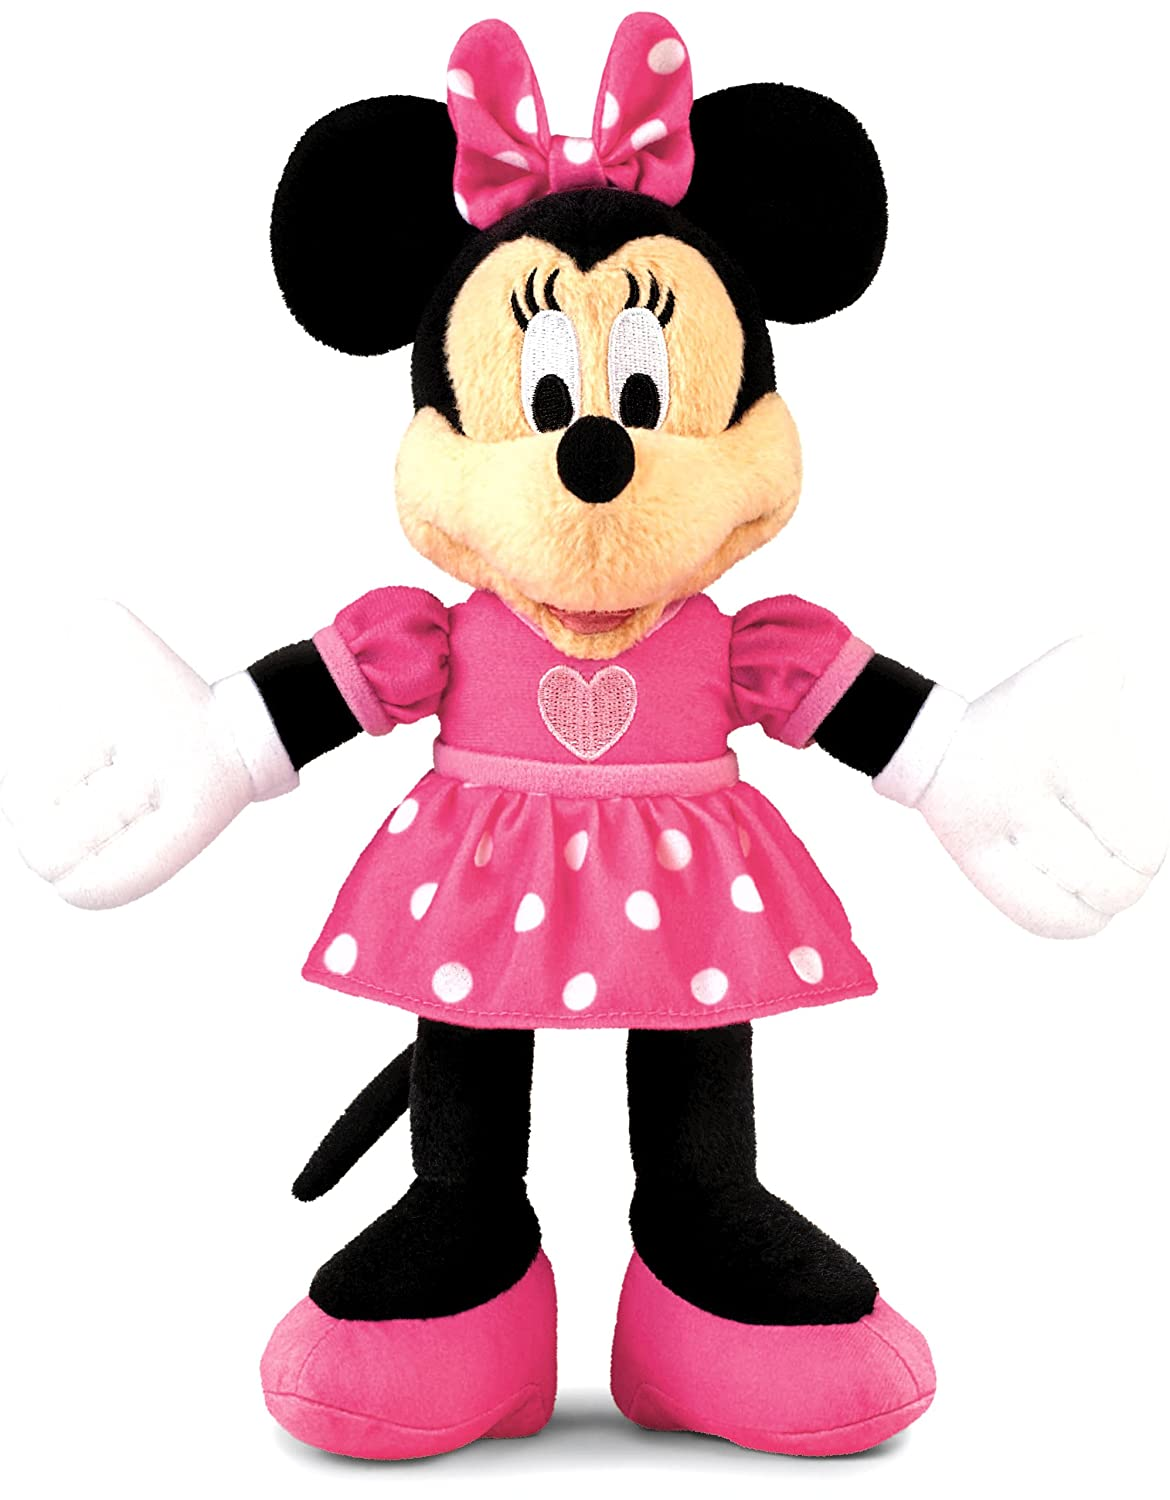 Minnie Mouse Toys : Disney minnie mouse soft plush doll toddler toy girl kid